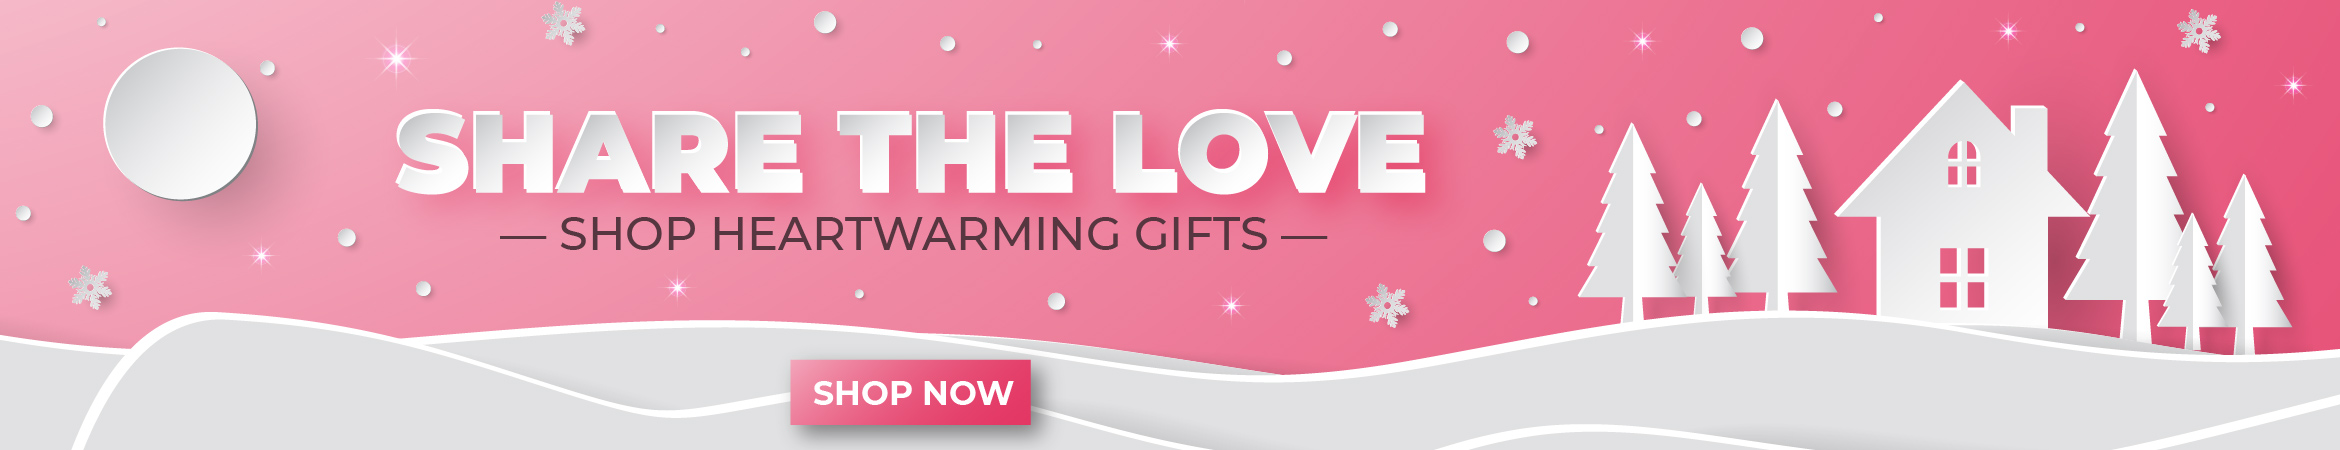 Share The Love ~ Shop Heart Warming Gifts Today!